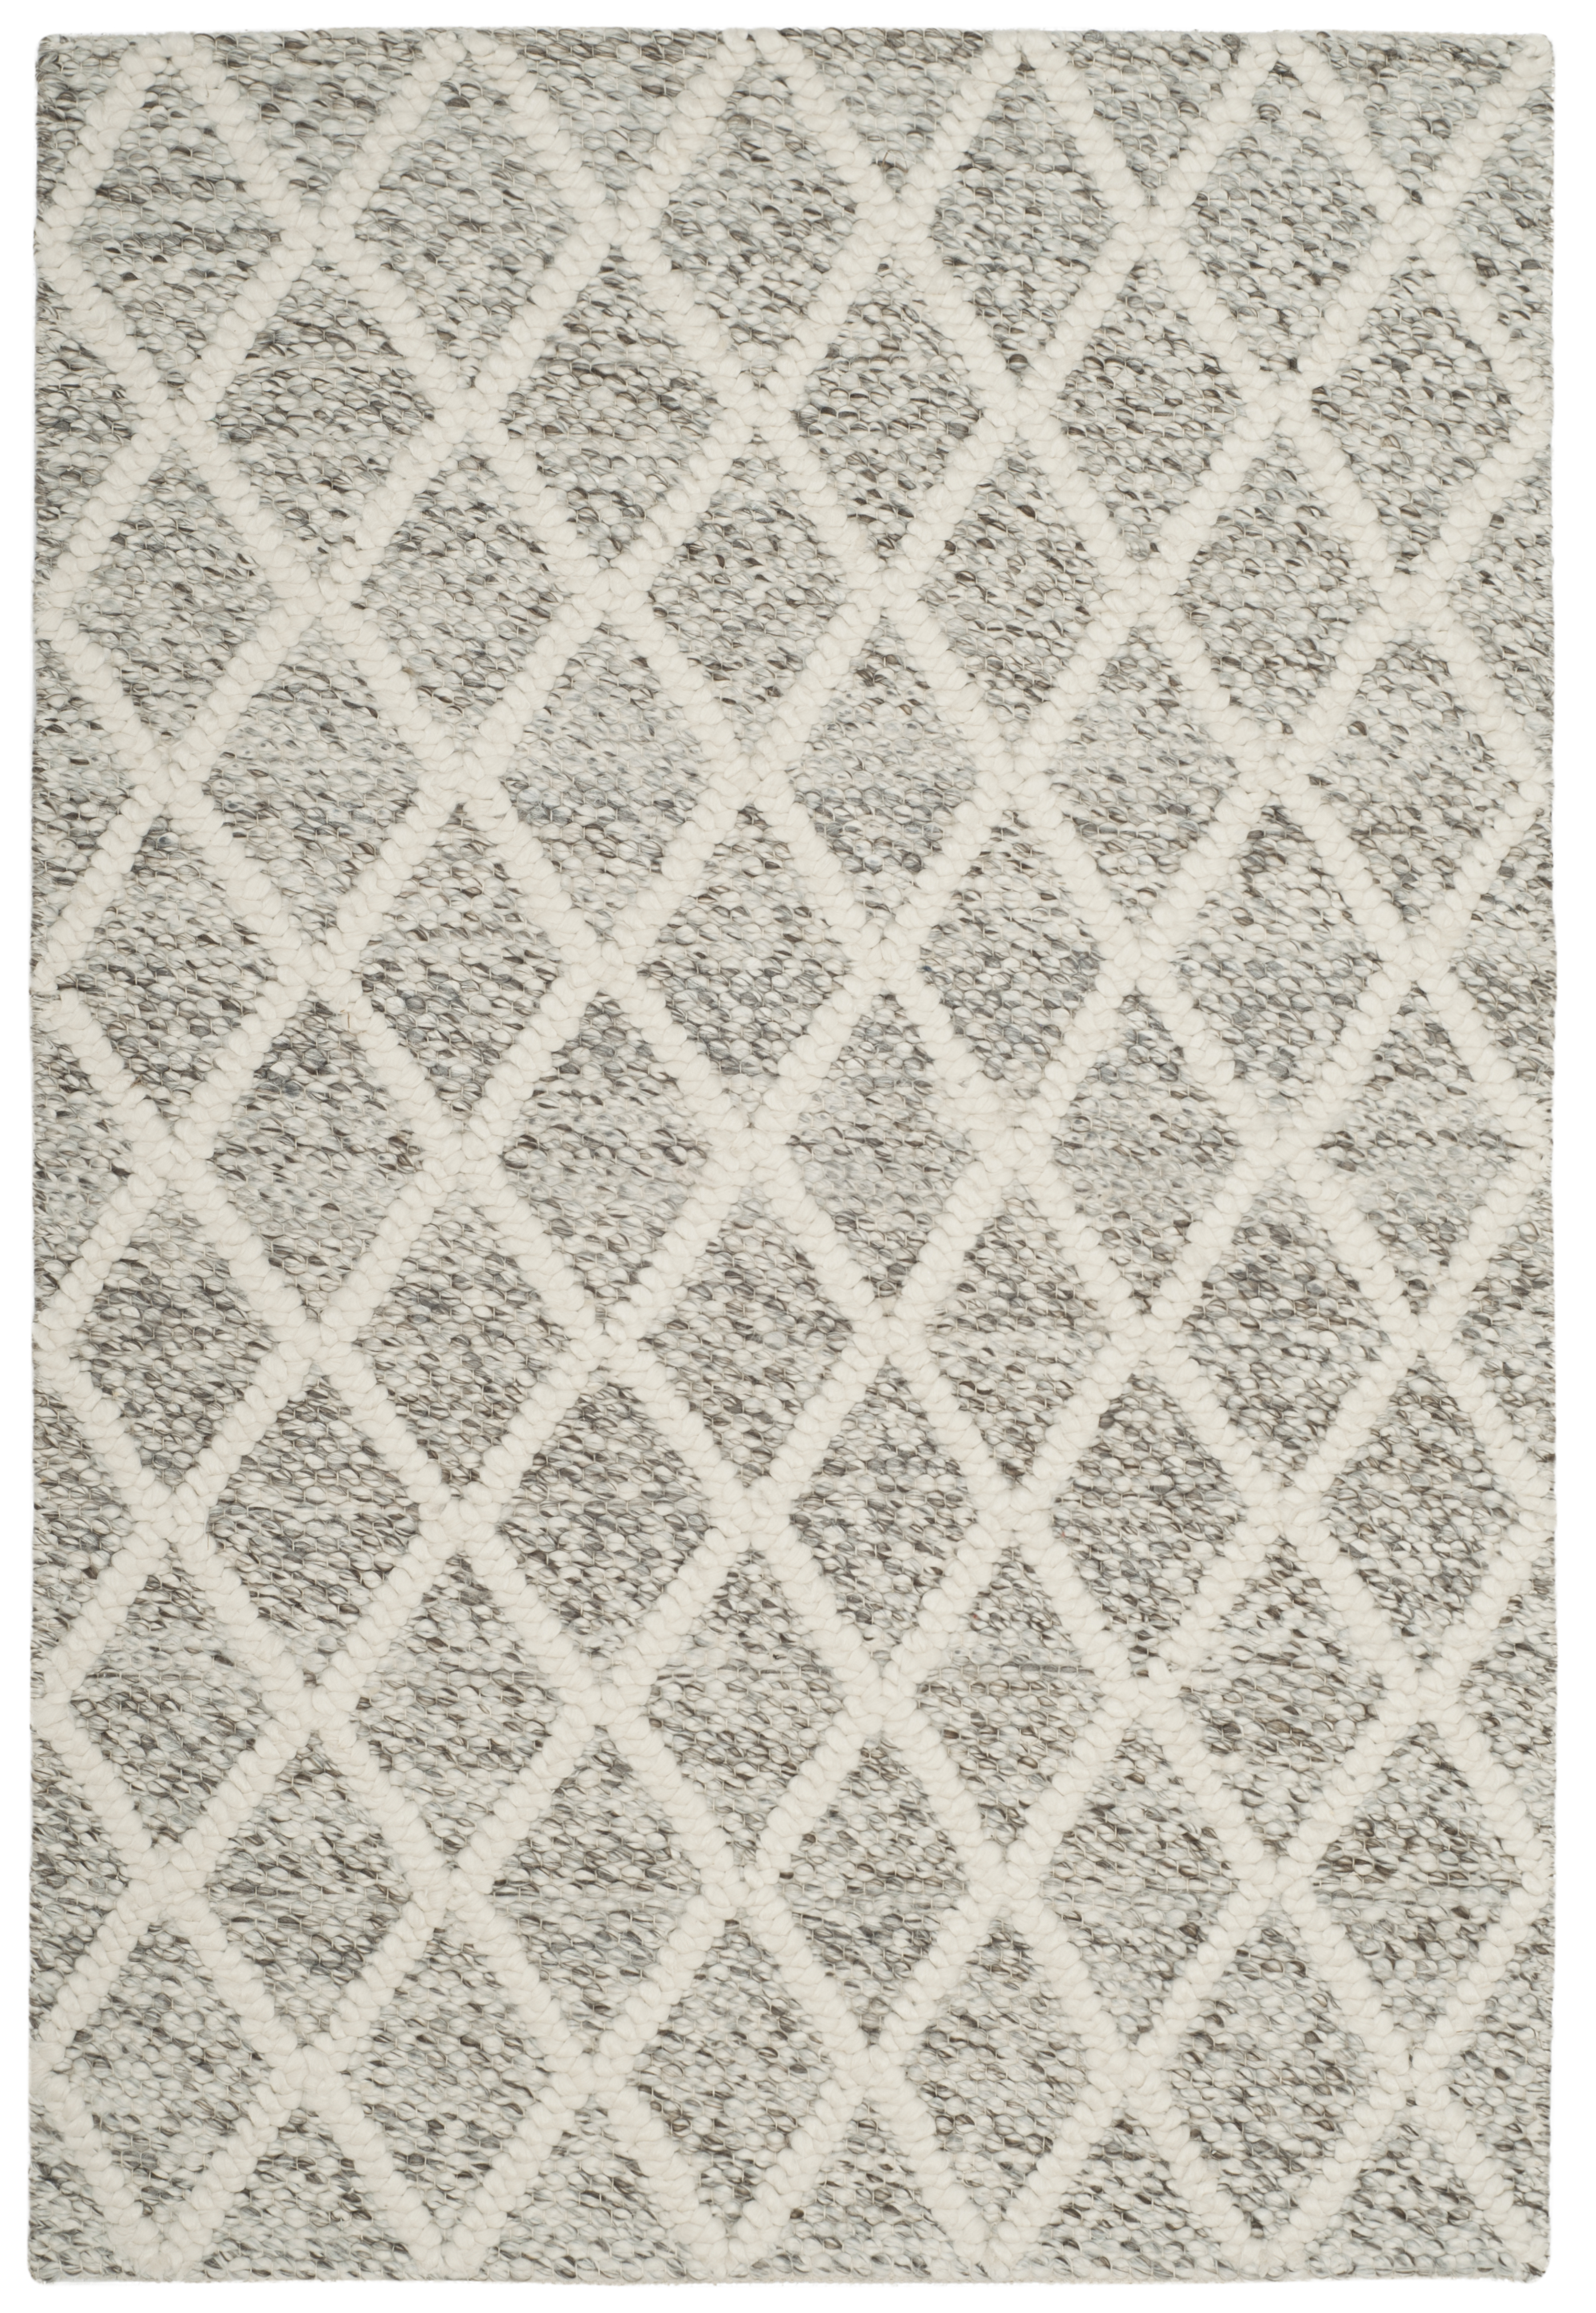 Chipley 711 4' X 6' Ivory Polyester Rug